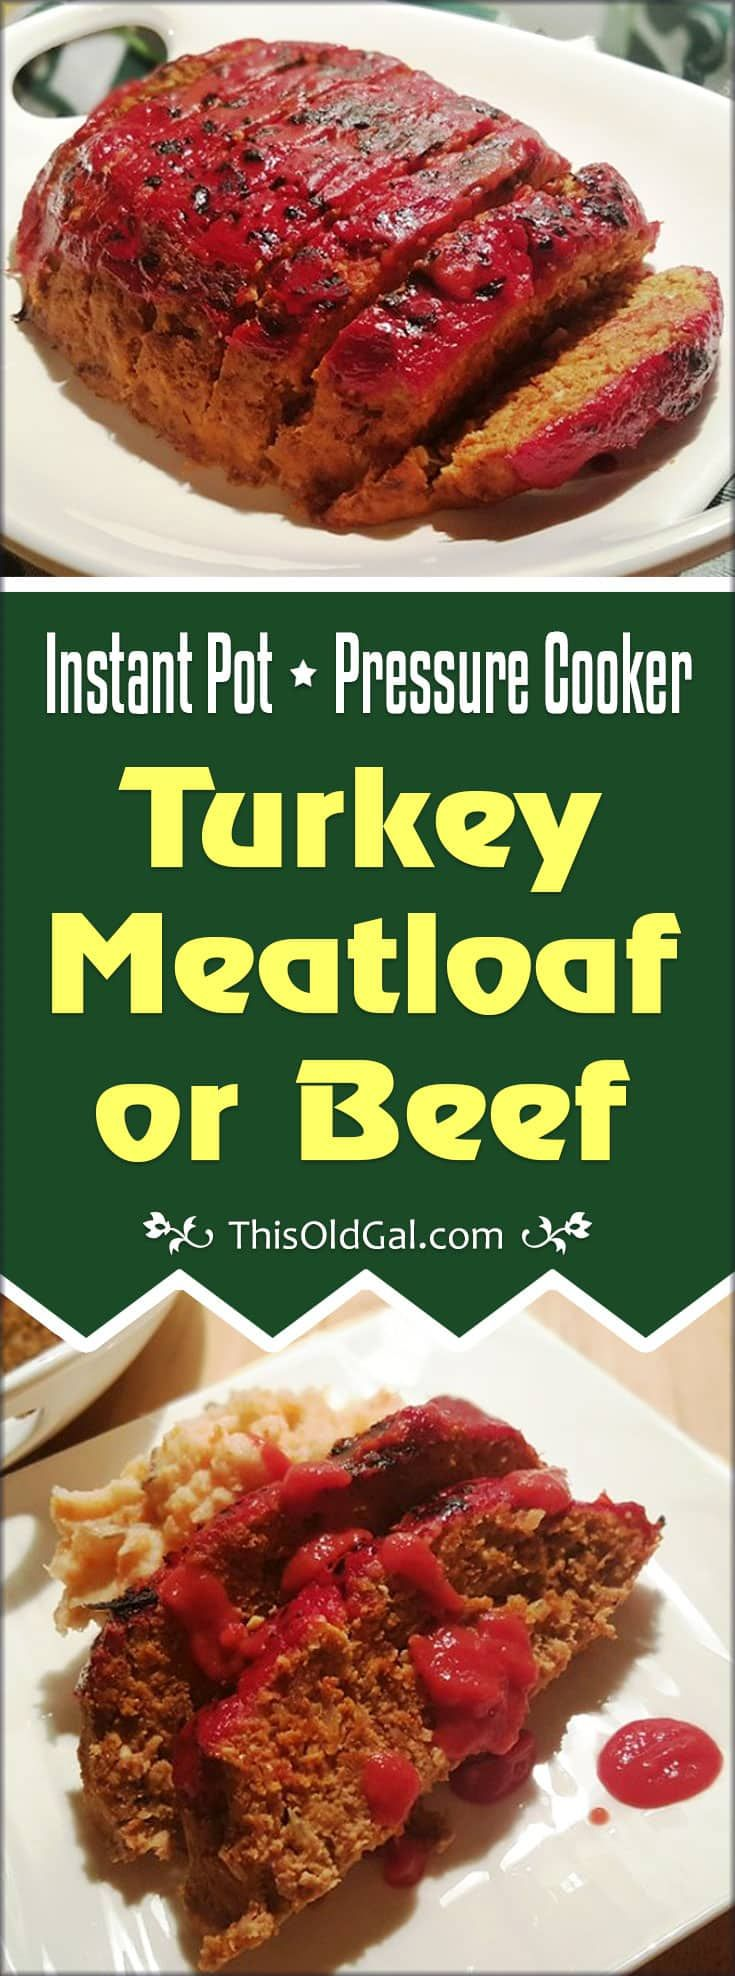 Pressure Cooker Turkey Meatloaf that is similar to Boston